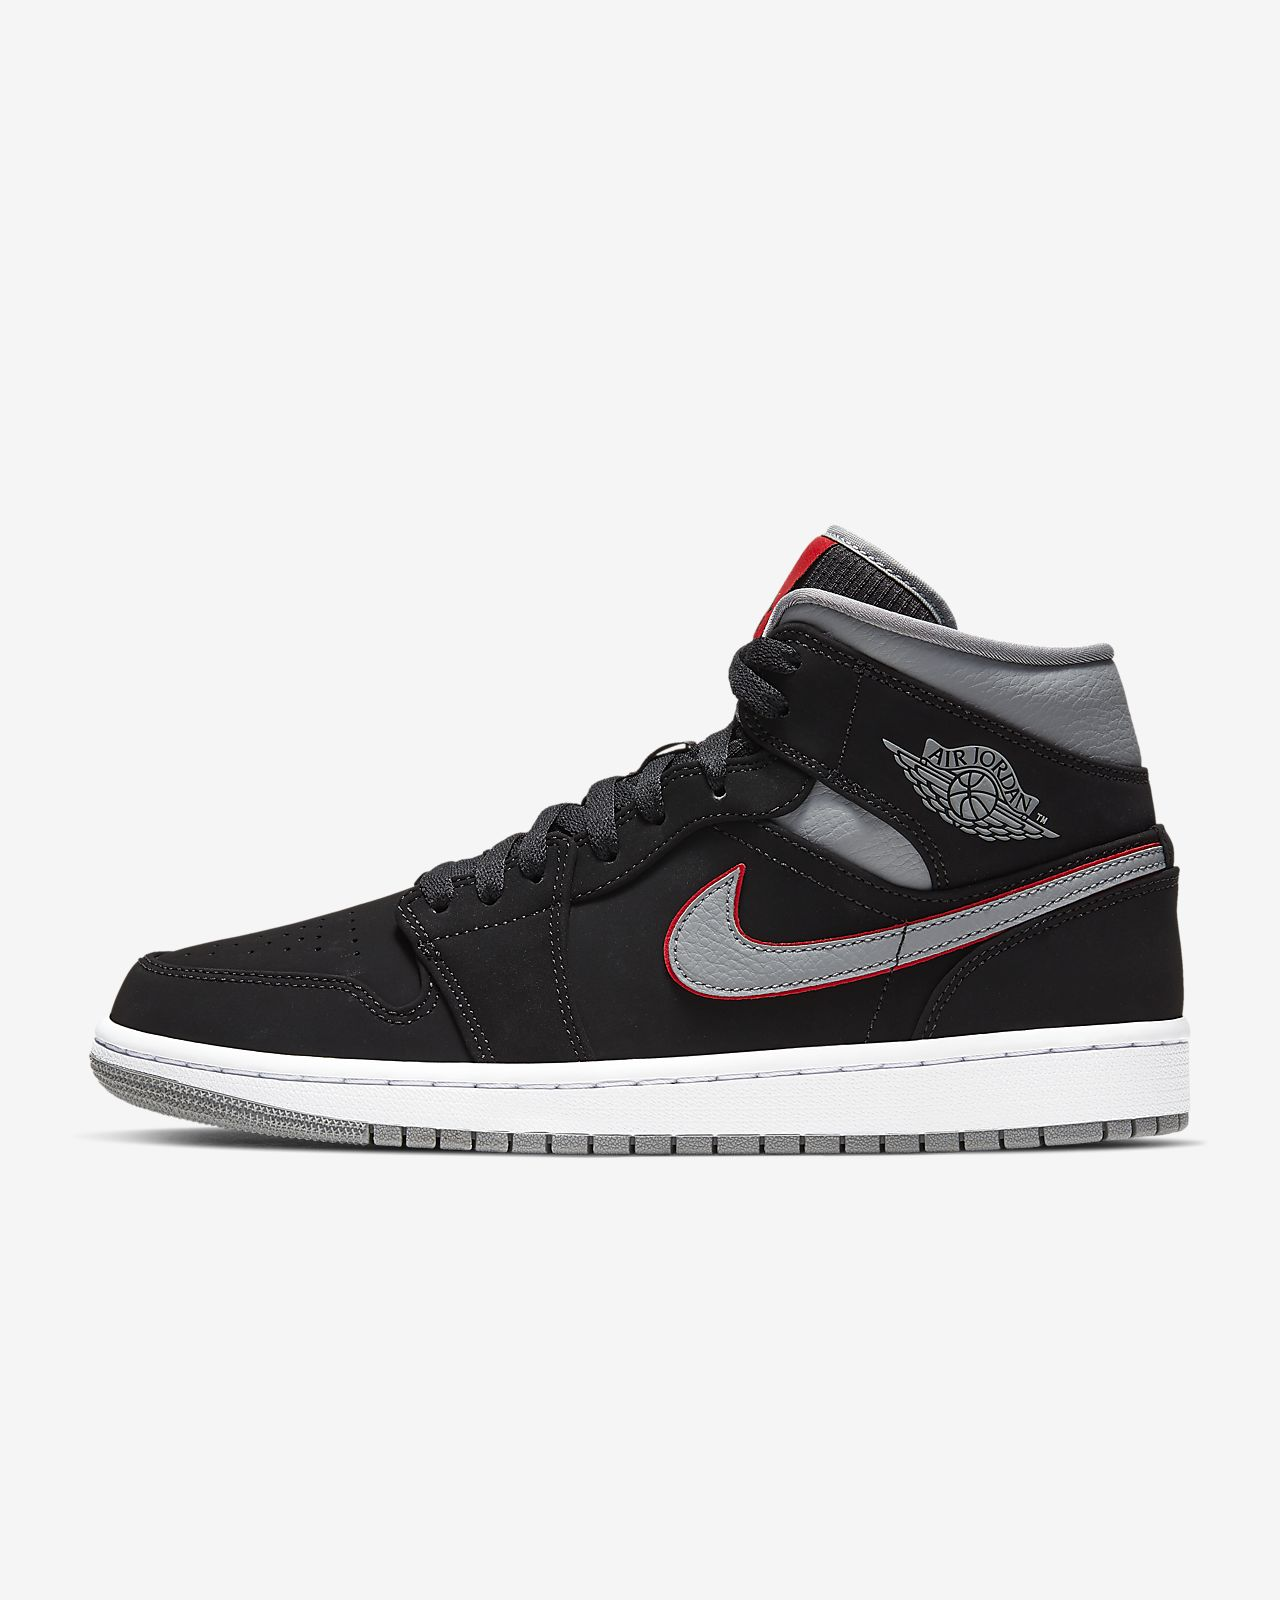 7d3696b914a1 Air Jordan 1 Mid Men s Shoe. Nike.com